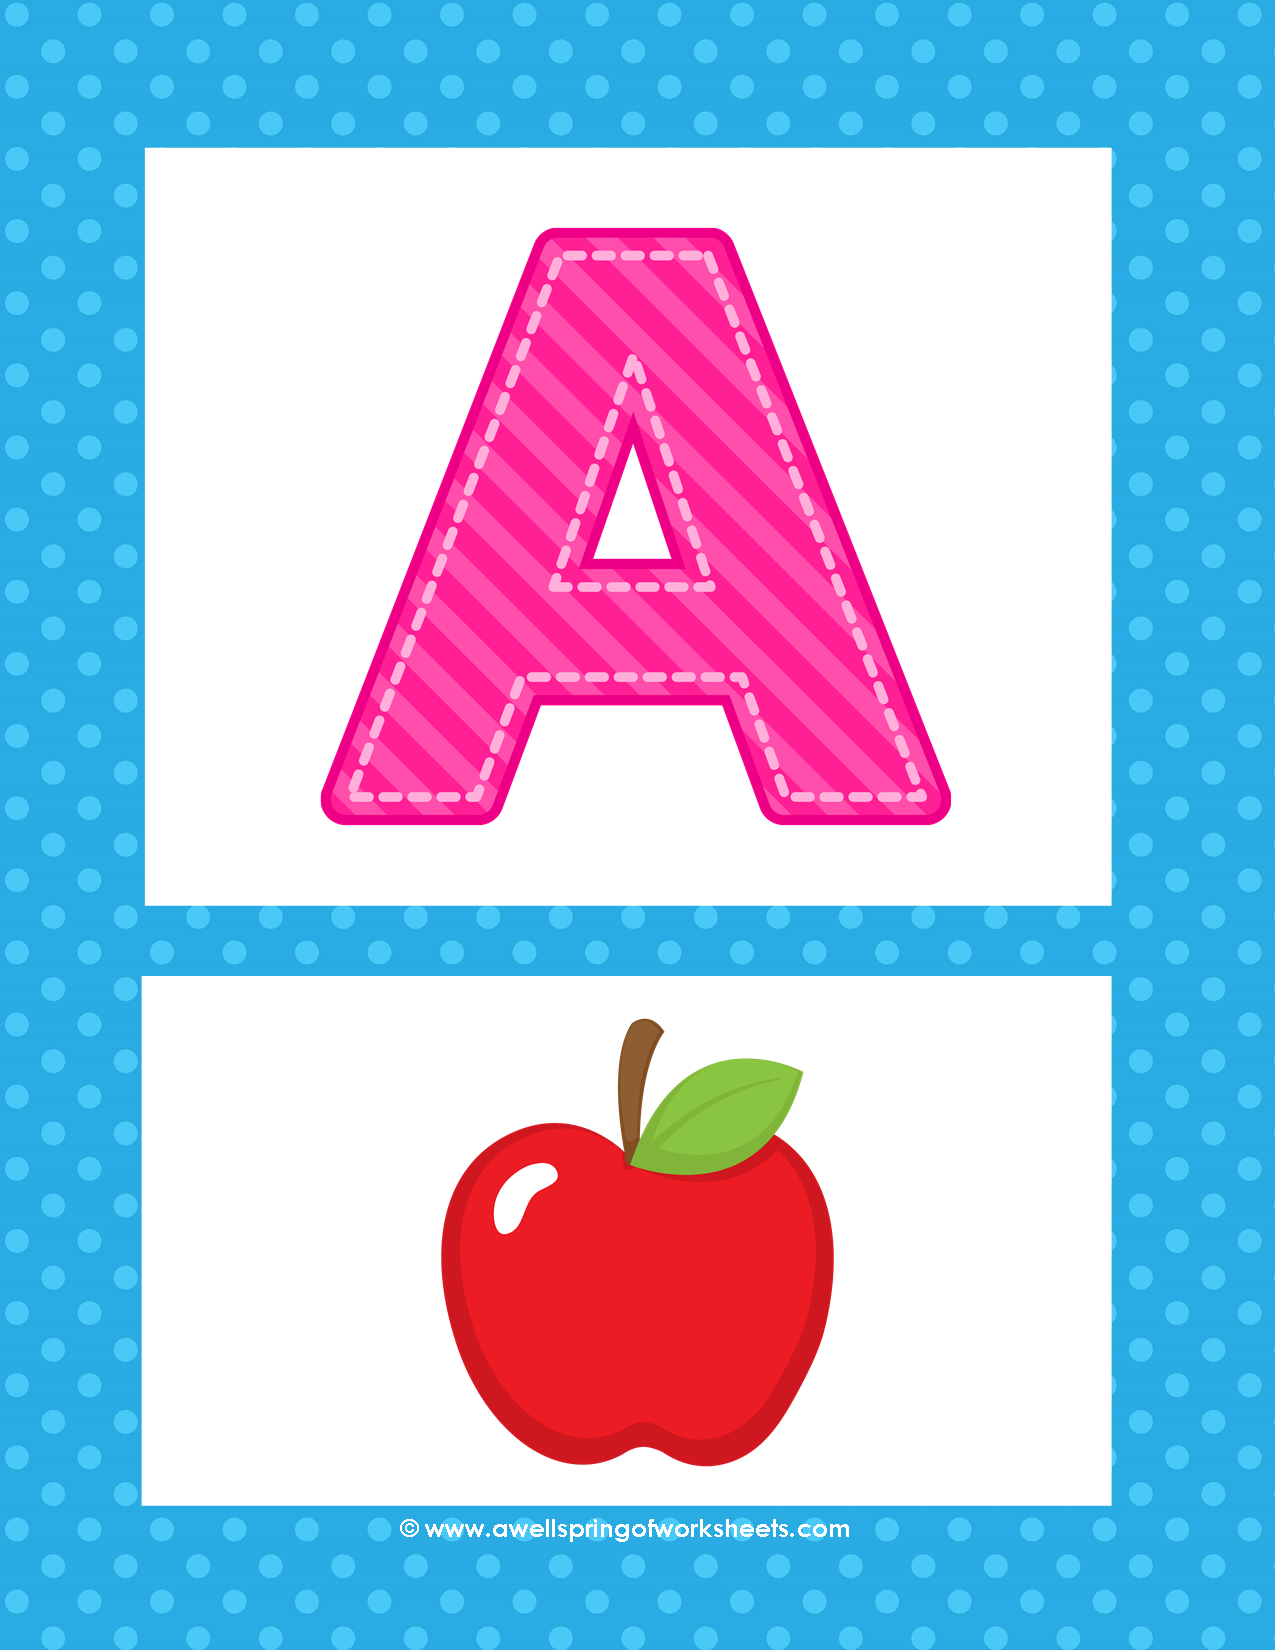 Alphabet Tracing Pages for Lowercase Letters Practice printing